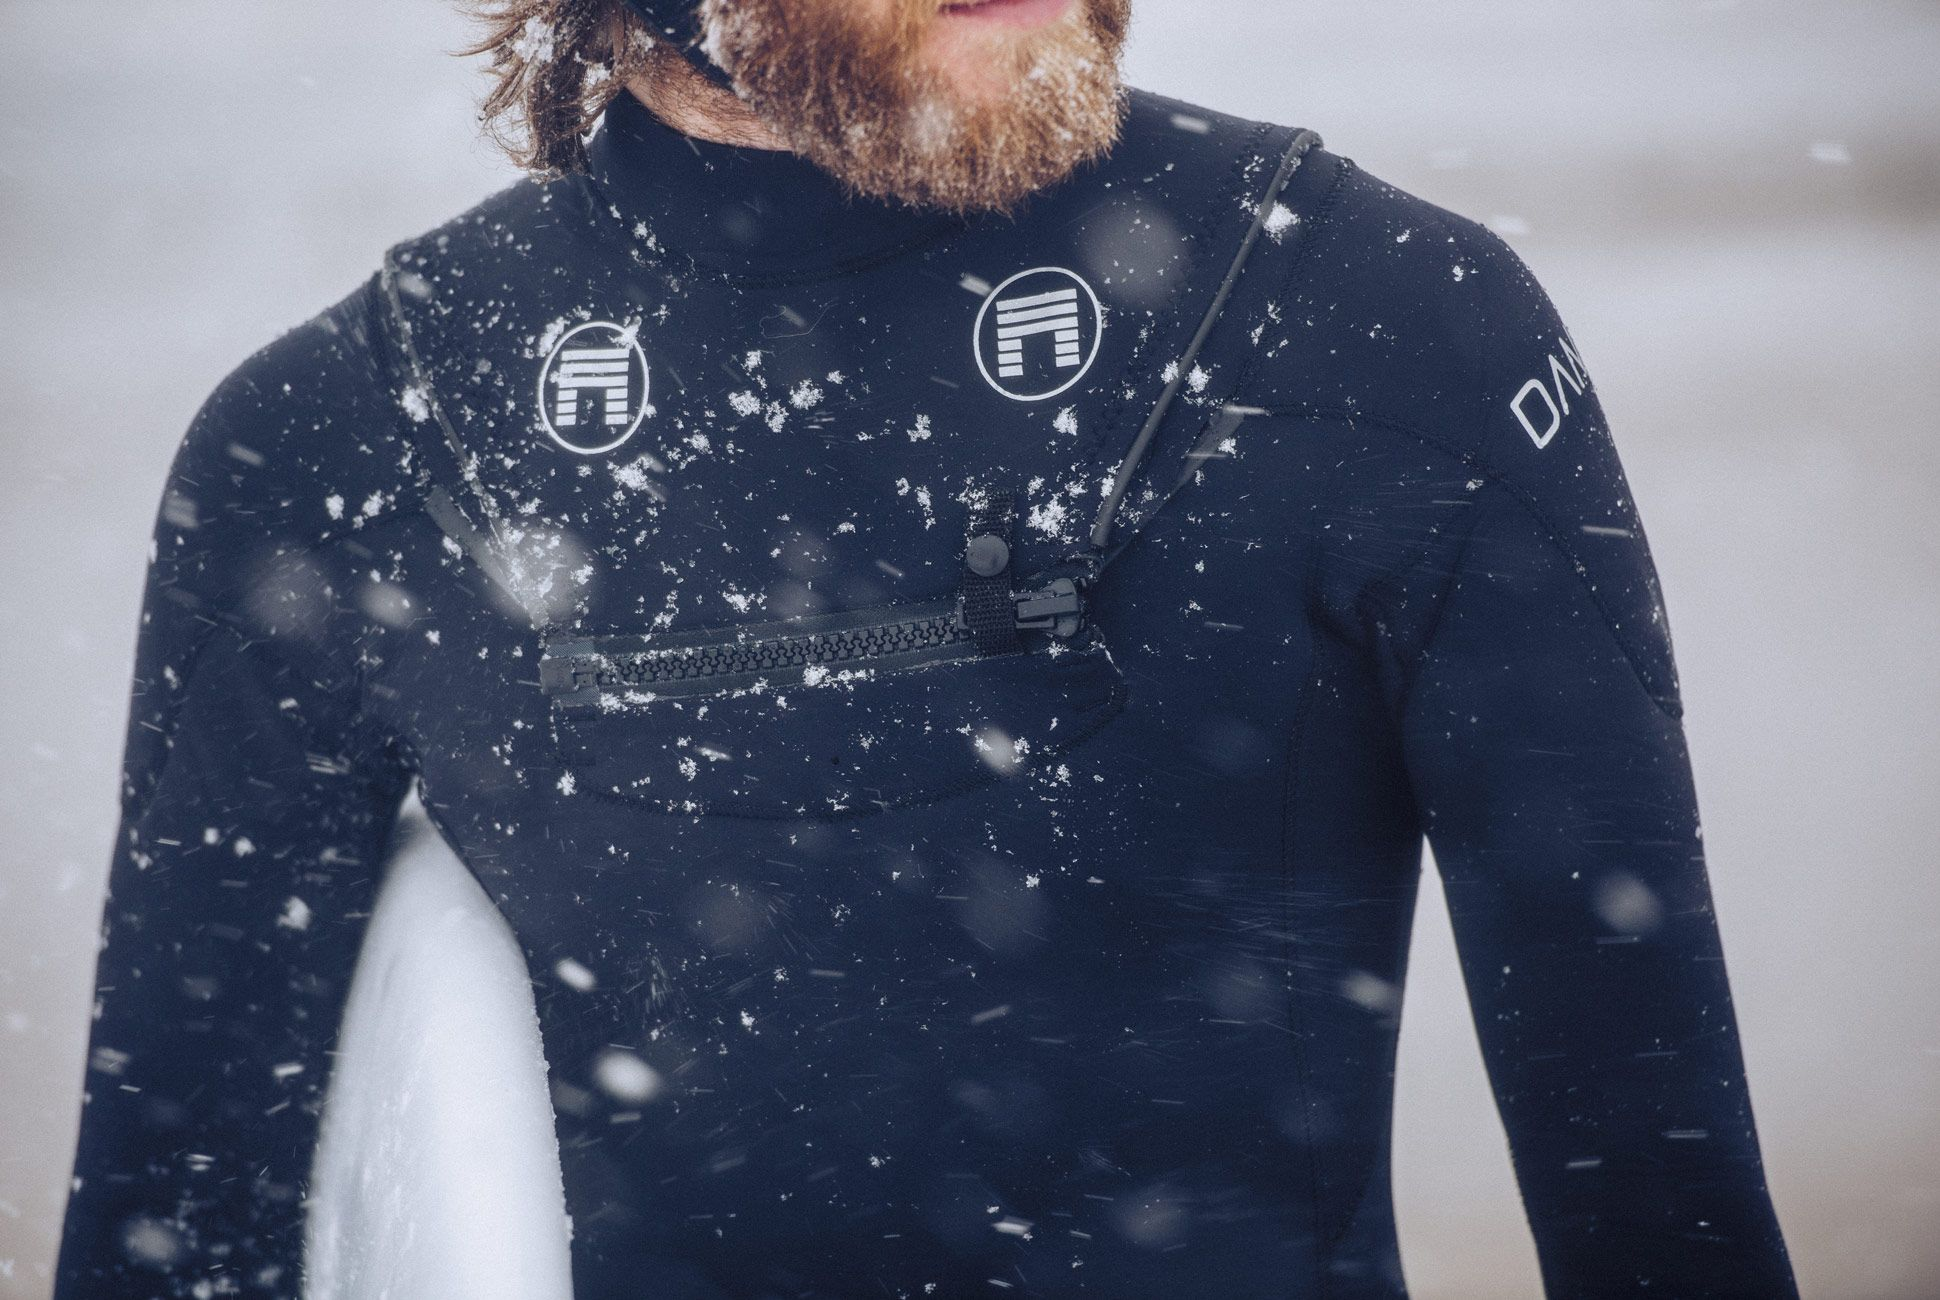 Winter-Surf-Suit-JZ-Gear-Patrol-Slide-6